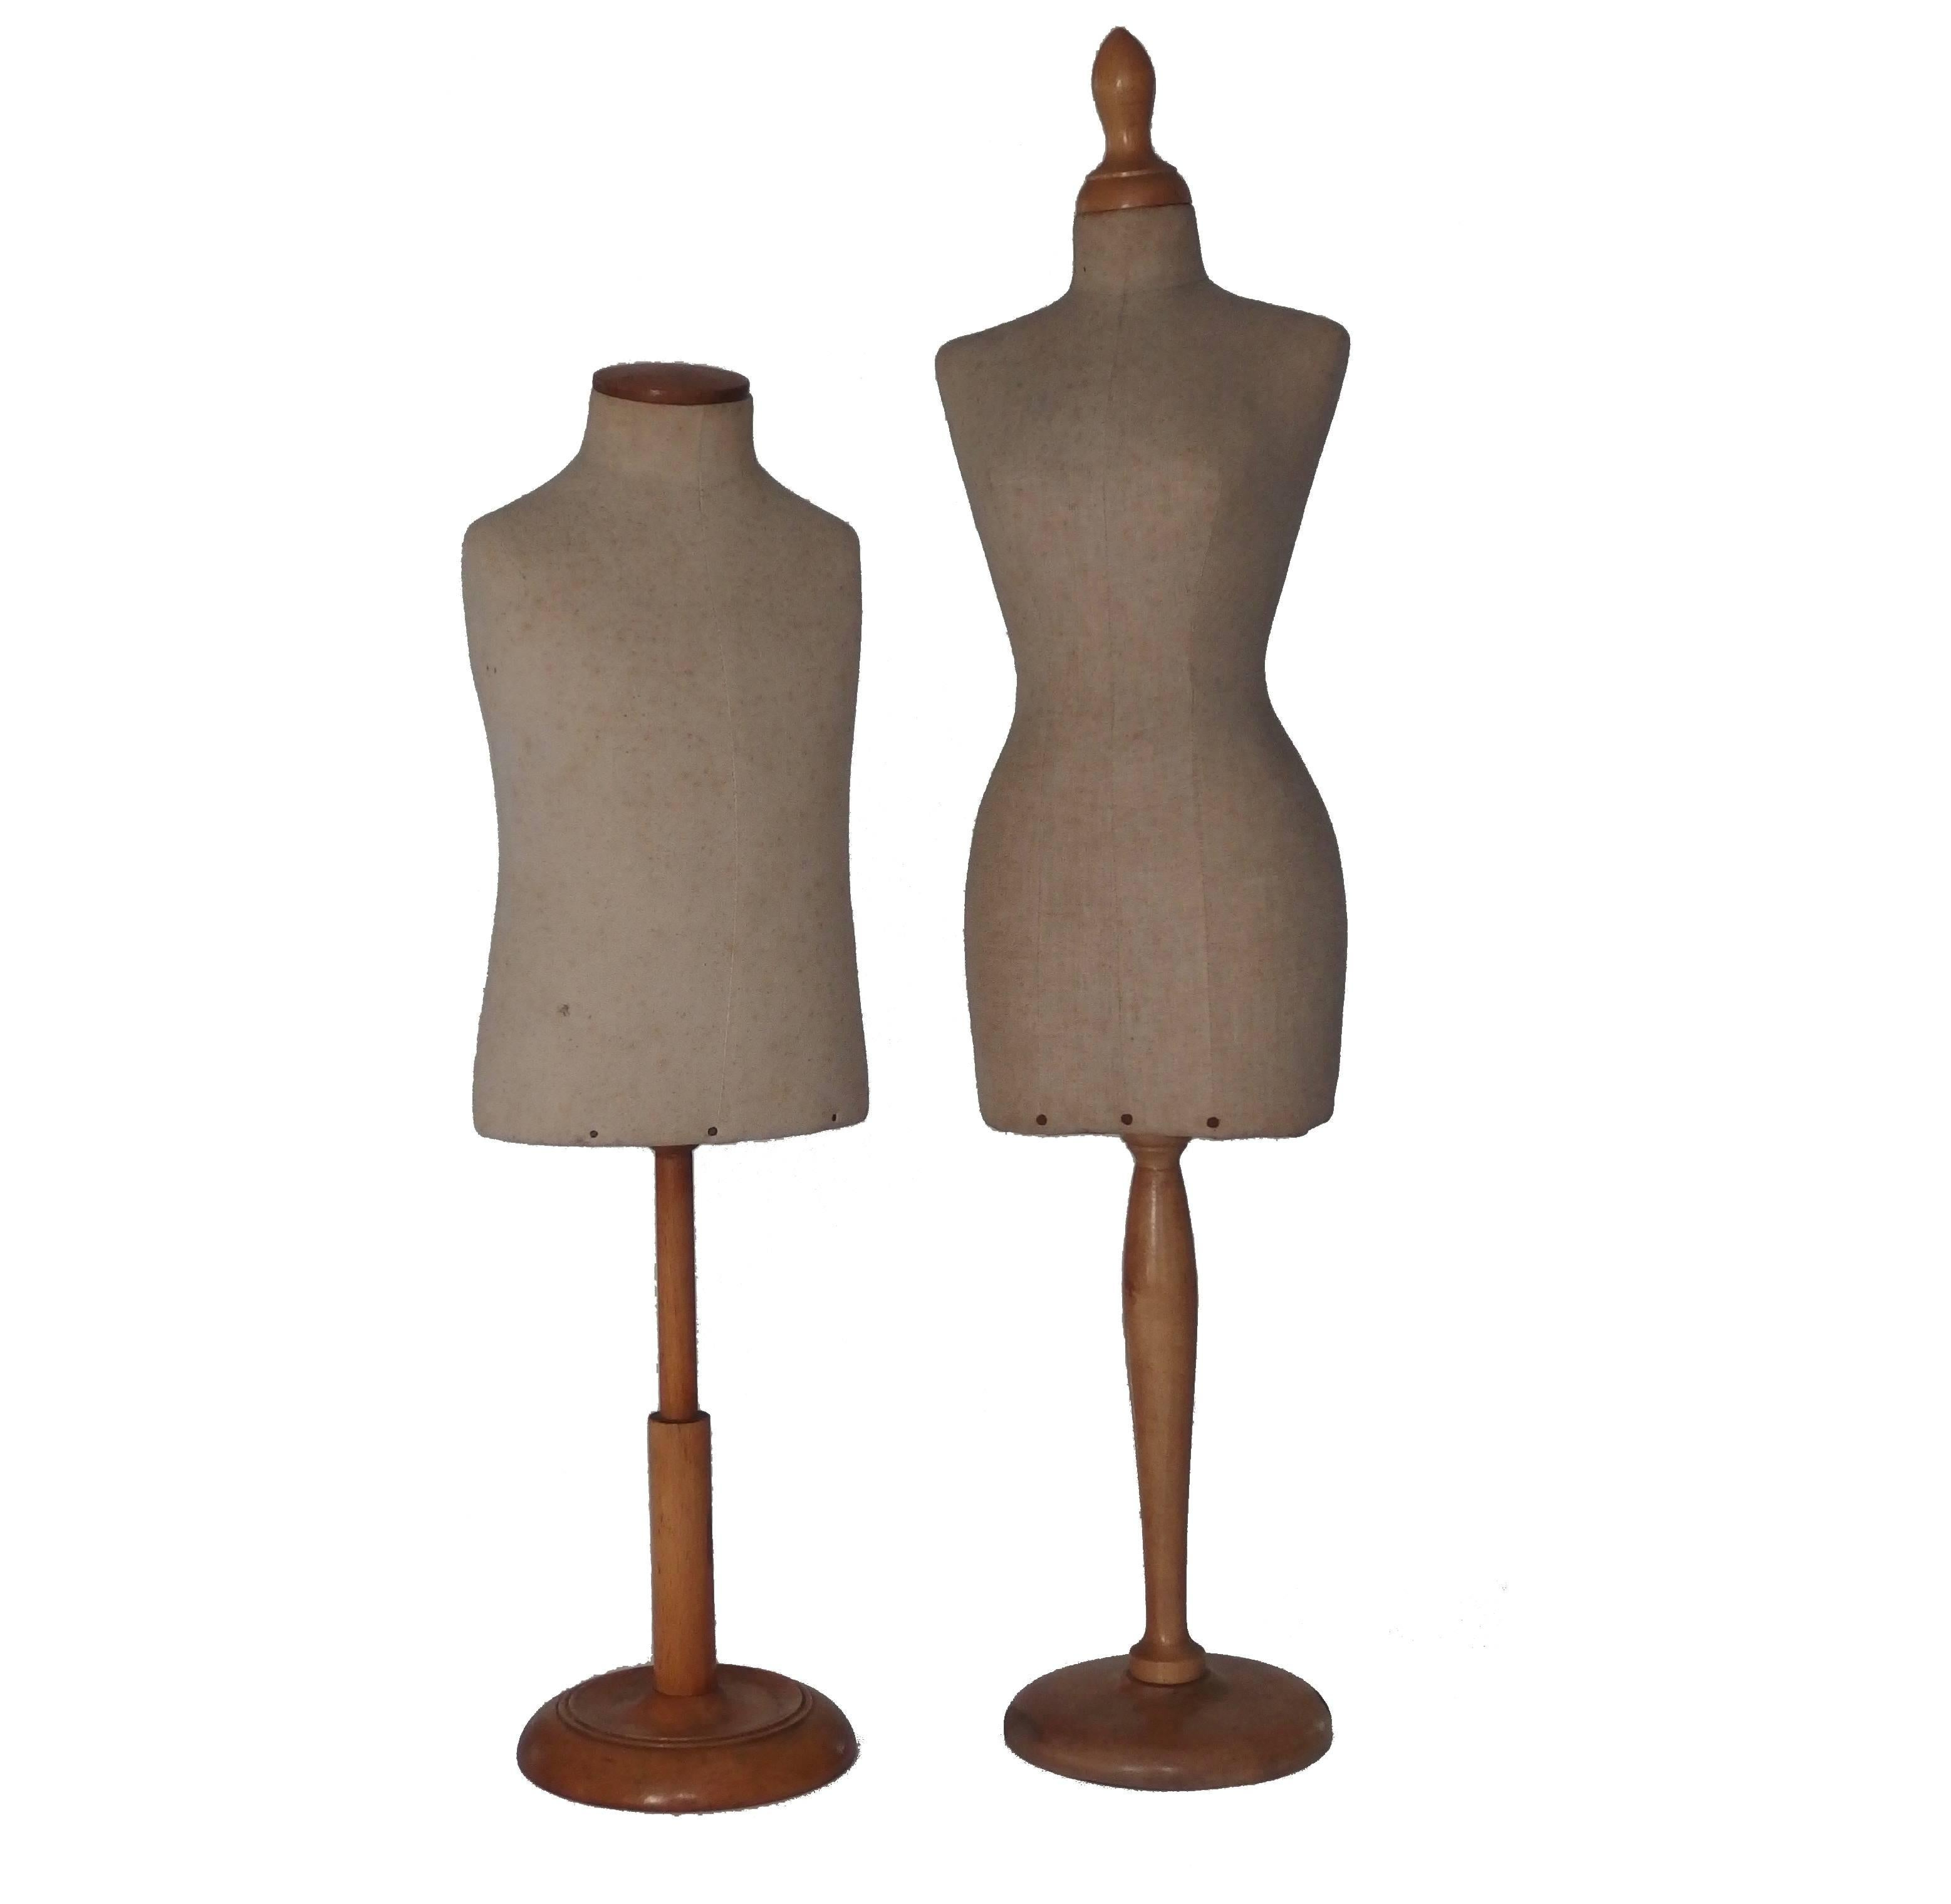 Two Miniature Mannequins / Dress Form For Sale at 1stdibs